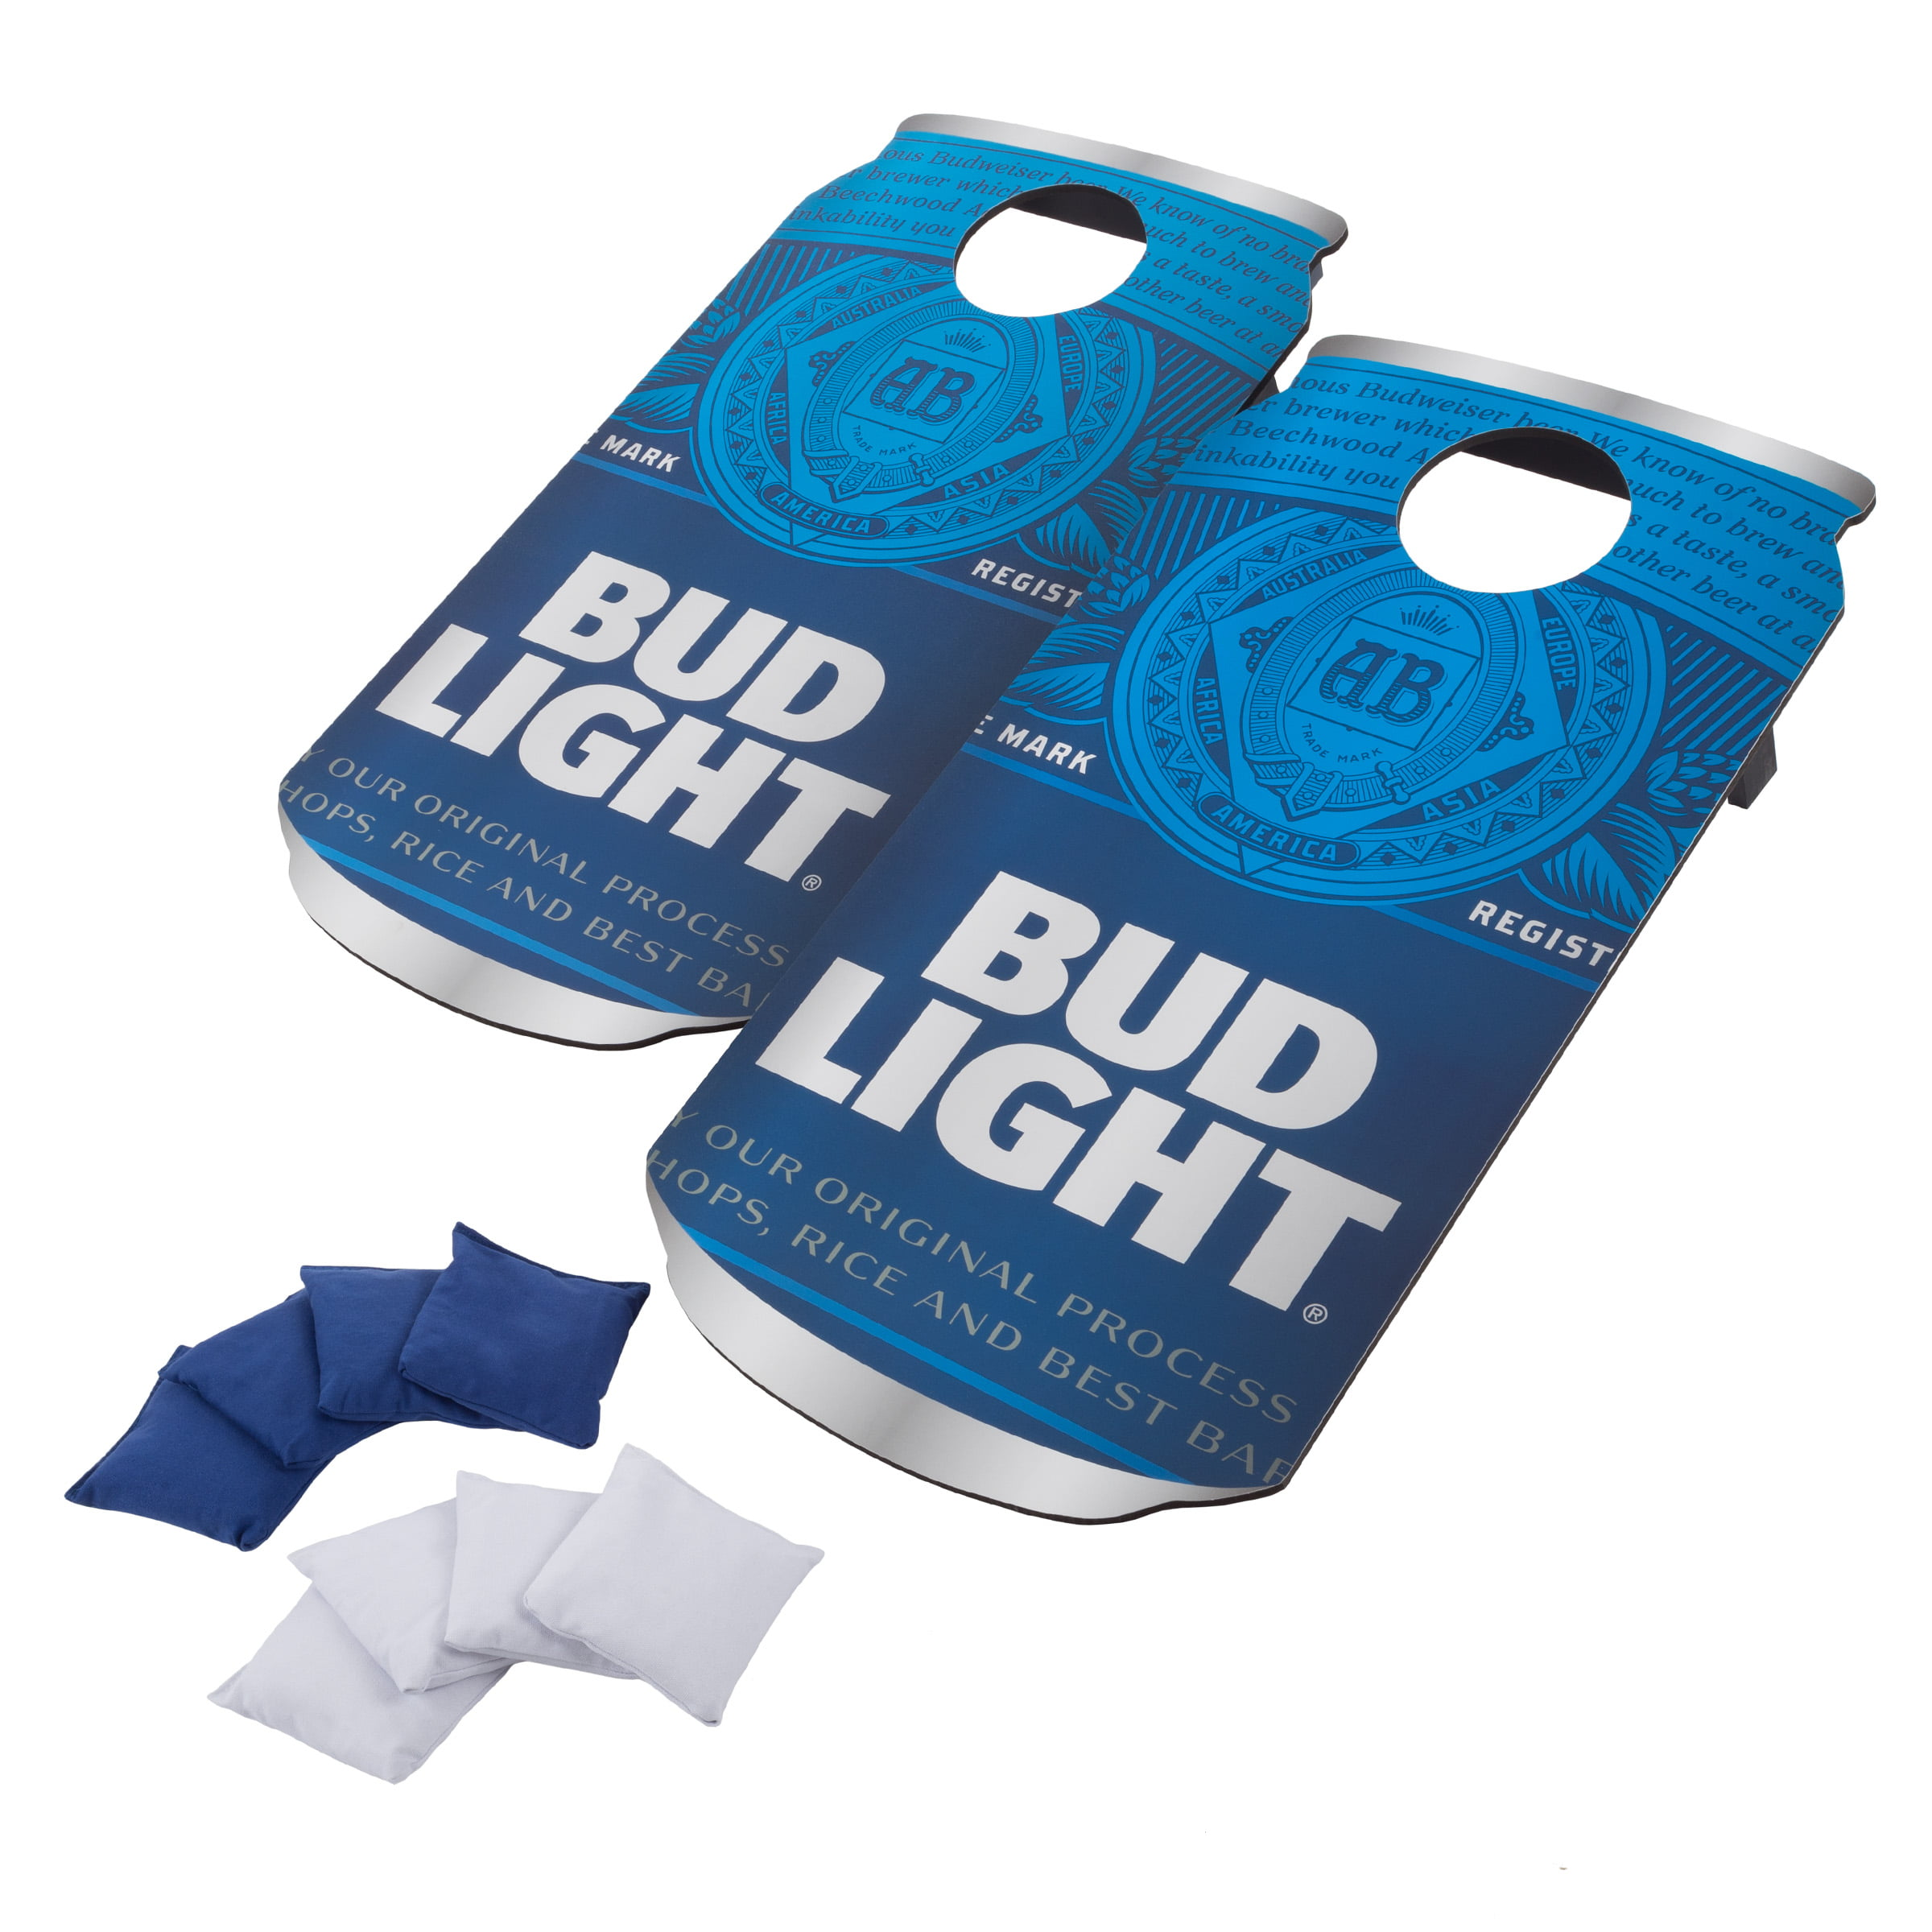 Super Bud Light Can Cornhole Bean Bag Toss Game Walmart Com Spiritservingveterans Wood Chair Design Ideas Spiritservingveteransorg